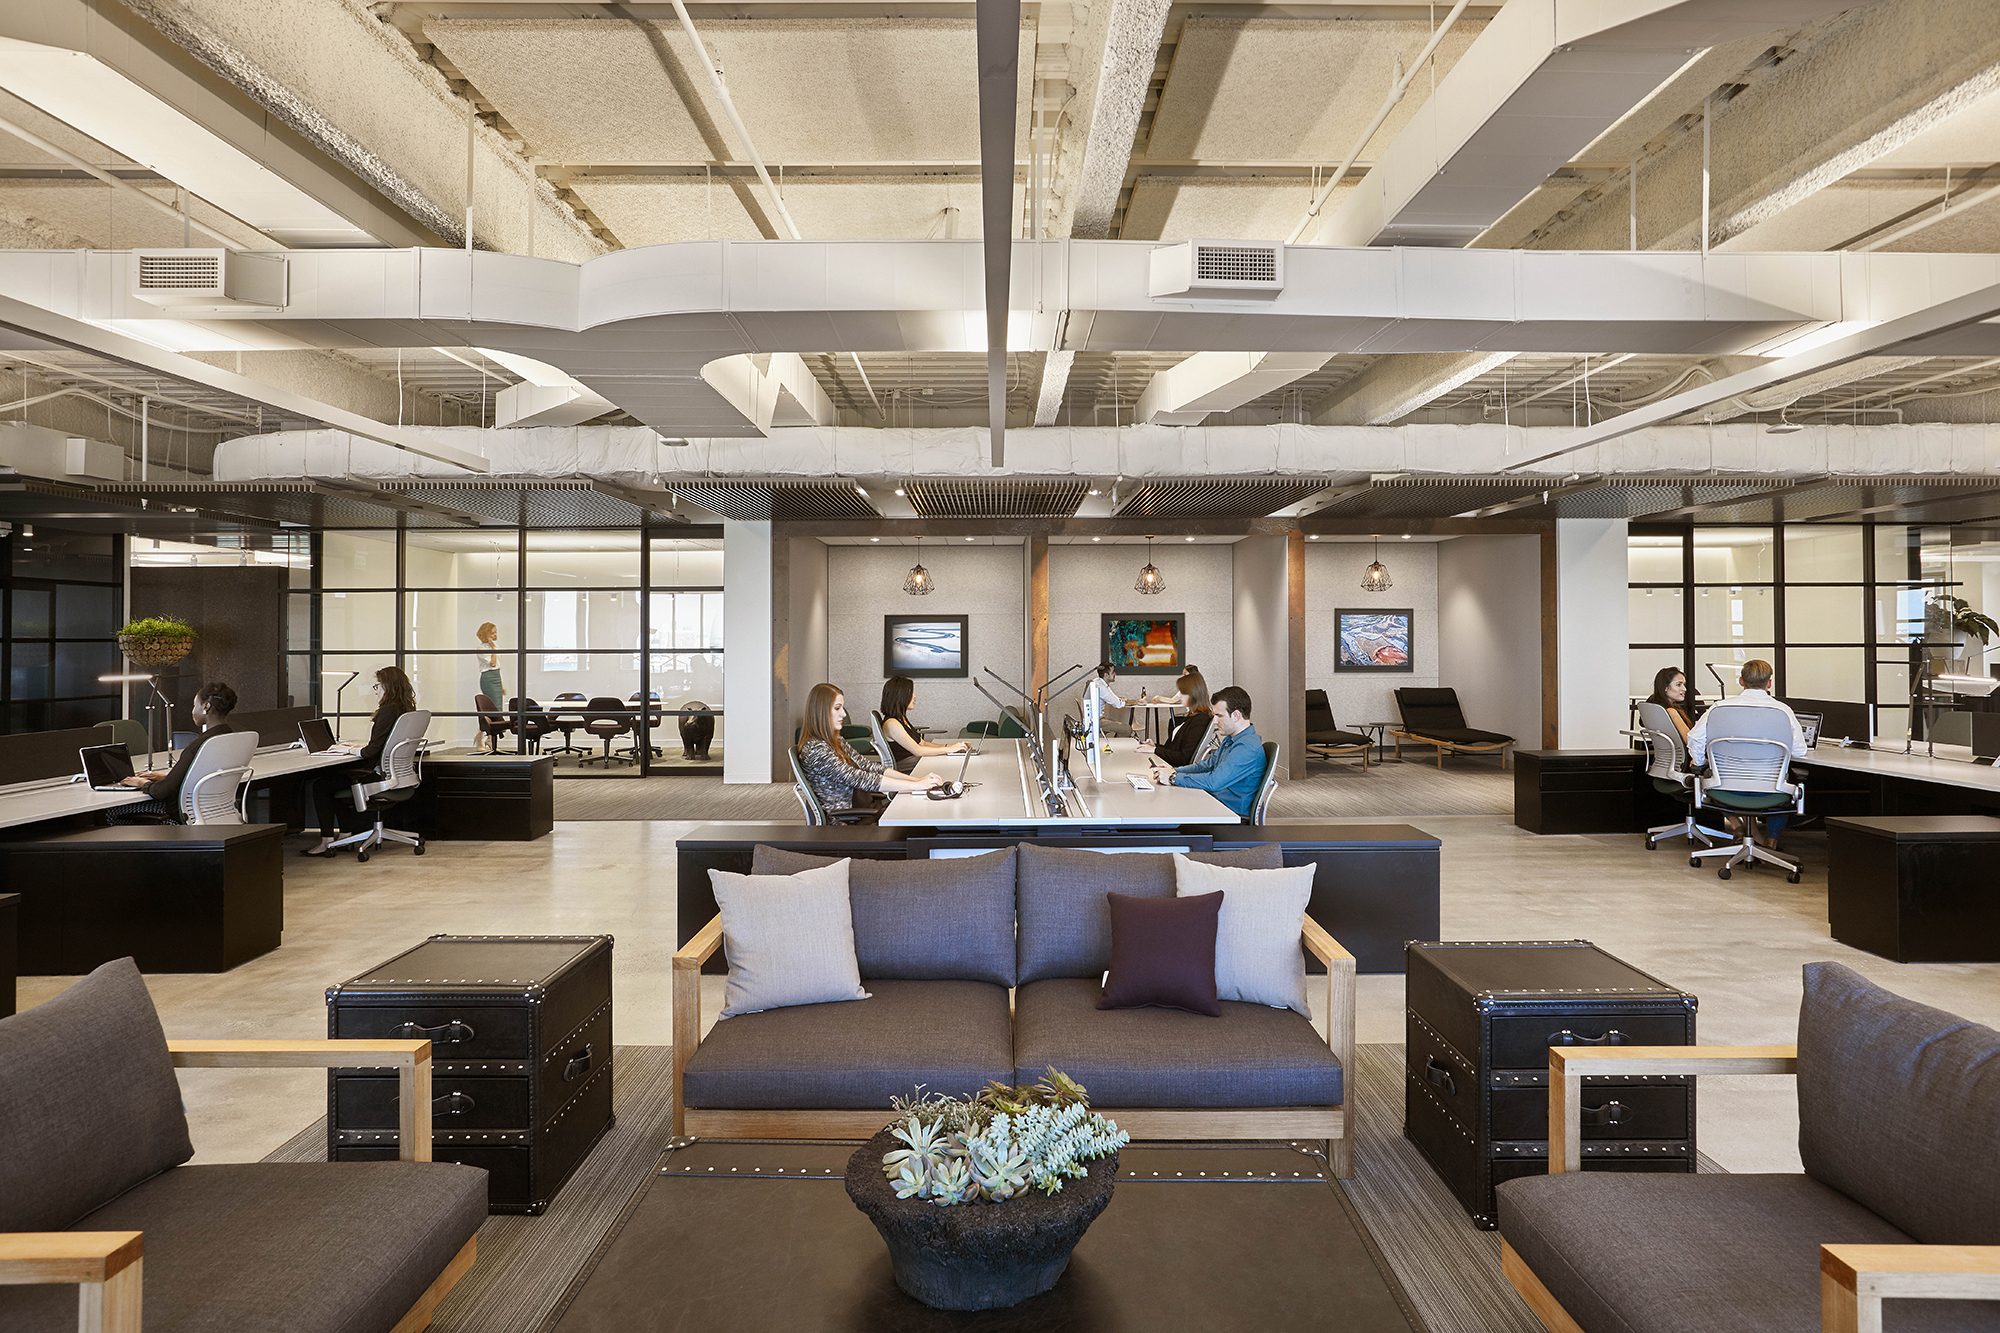 The Best Practices: How To Maintain Office Fixtures